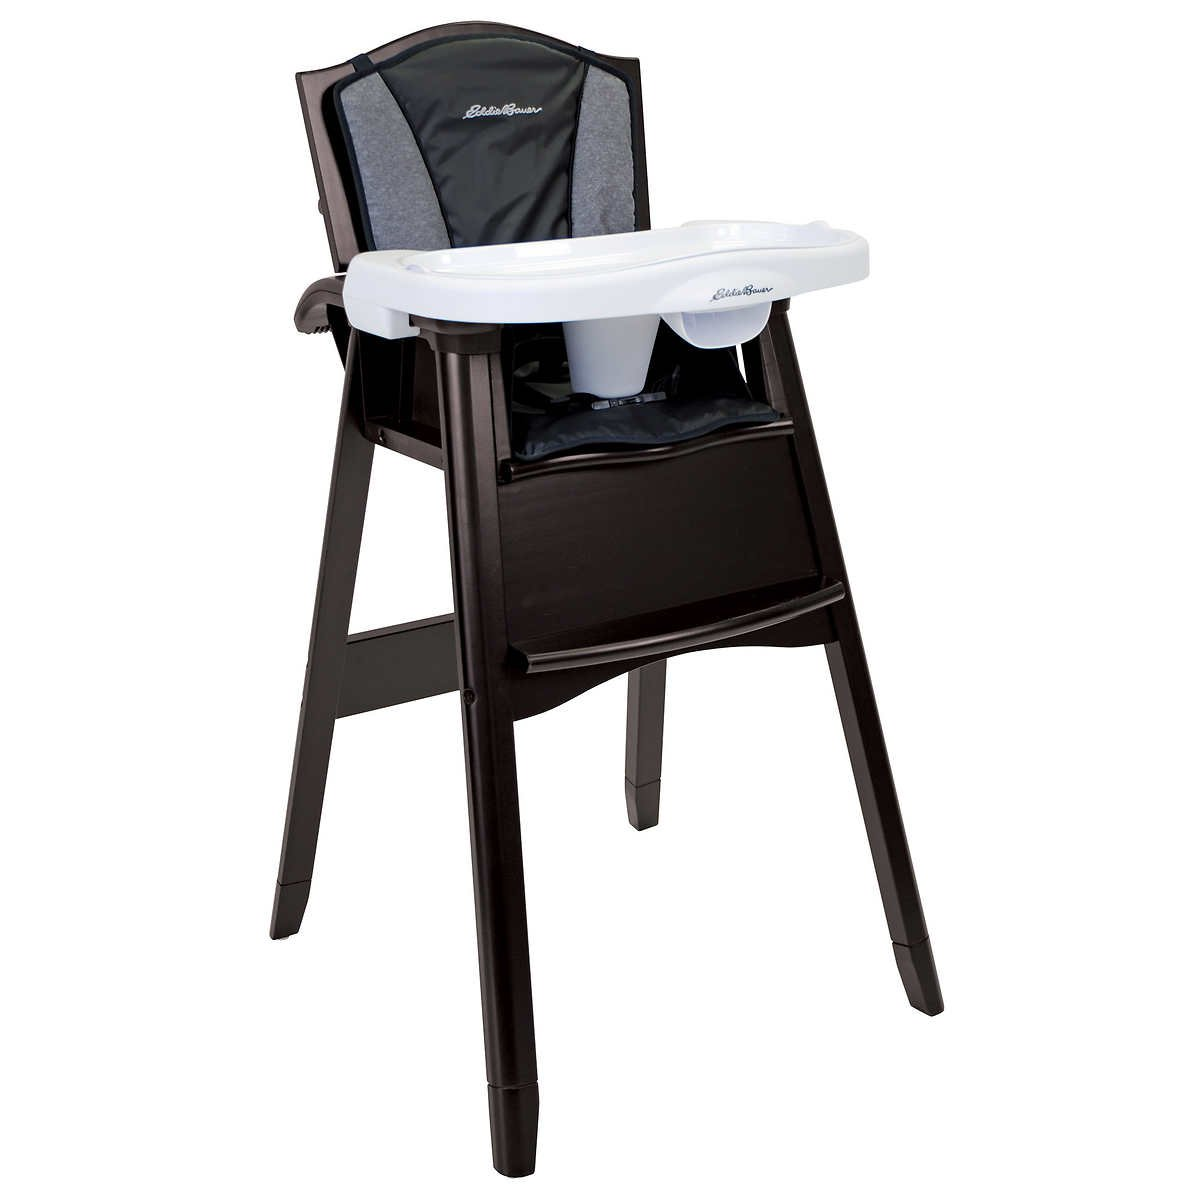 Eddie Bauer Classic Wood High Chair Blue Bay